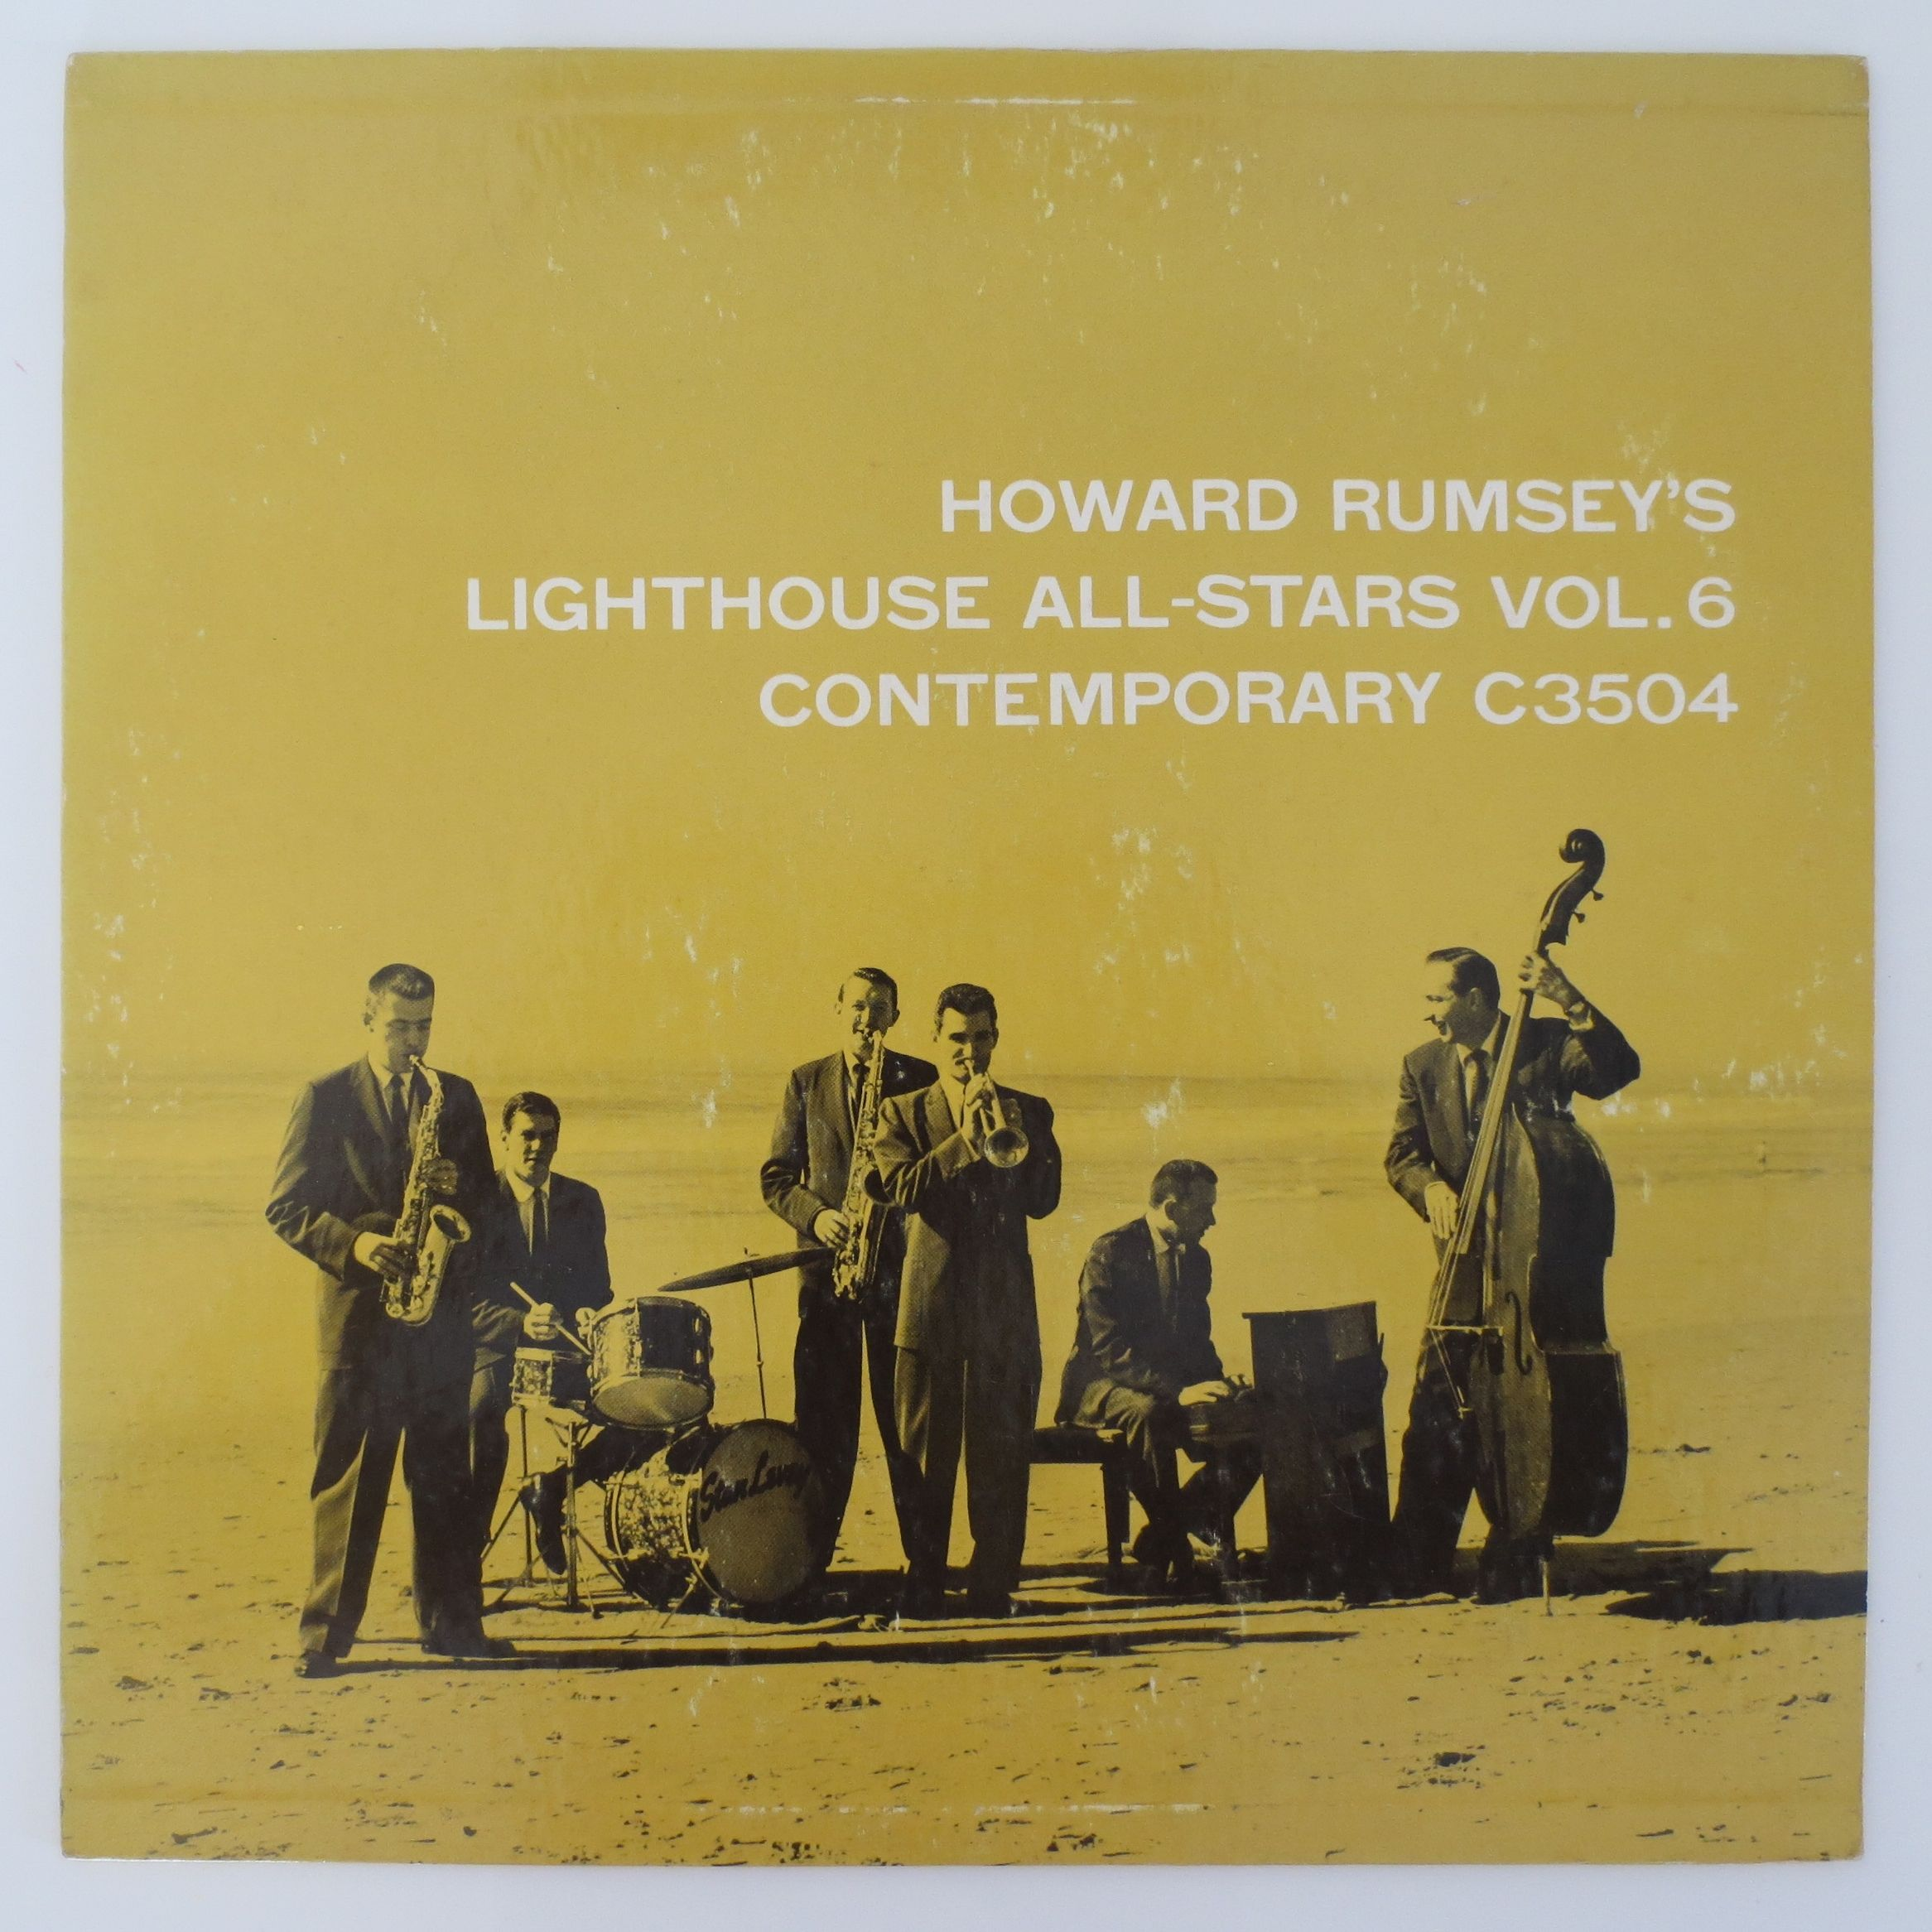 Howard Rumsey's Lighthouse All-Stars ?- Vol. 6(Contemporary Records ?- C 3504)mono